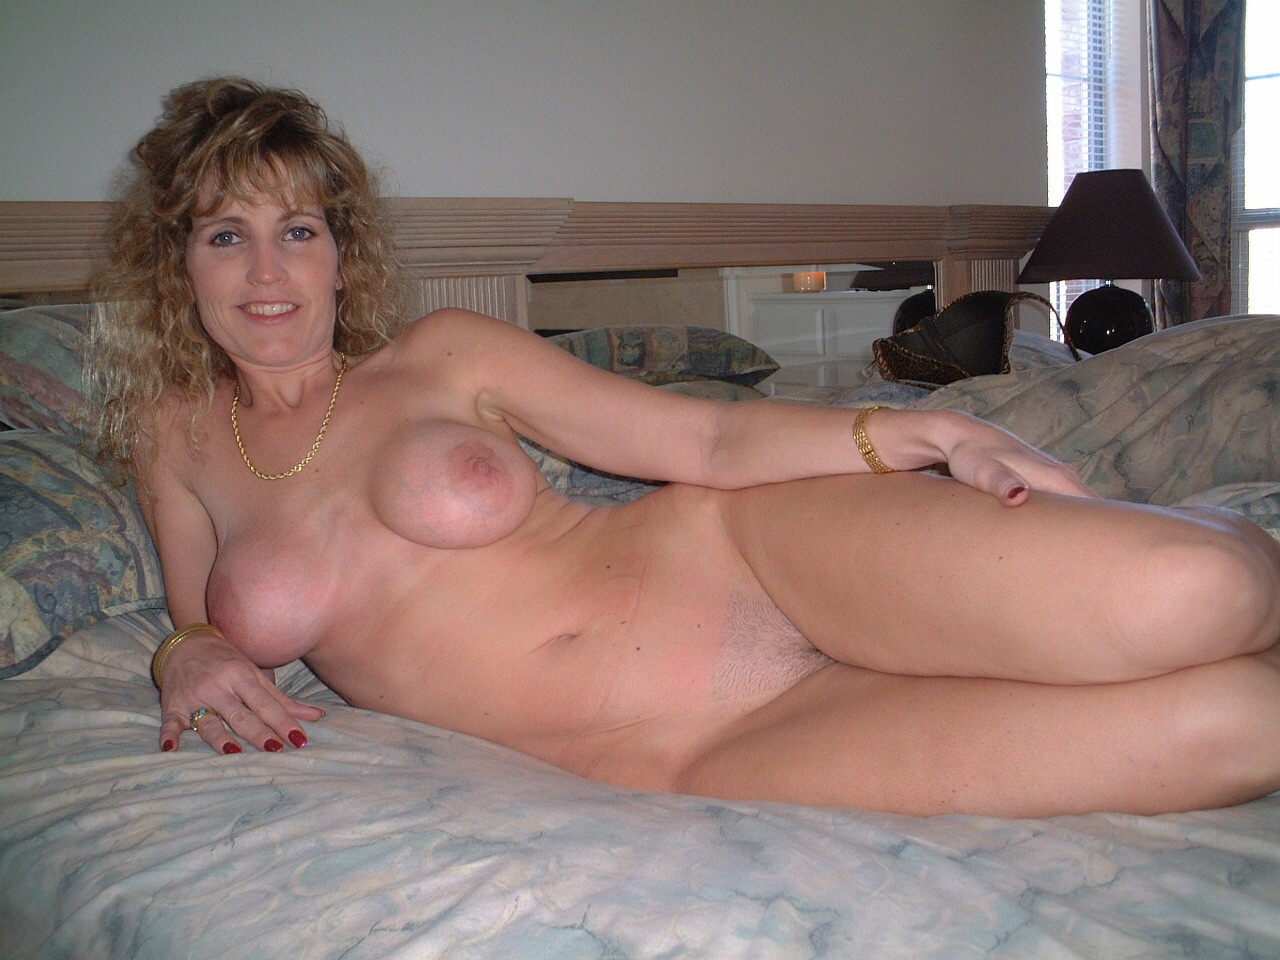 Vid She's mature real woman Sex